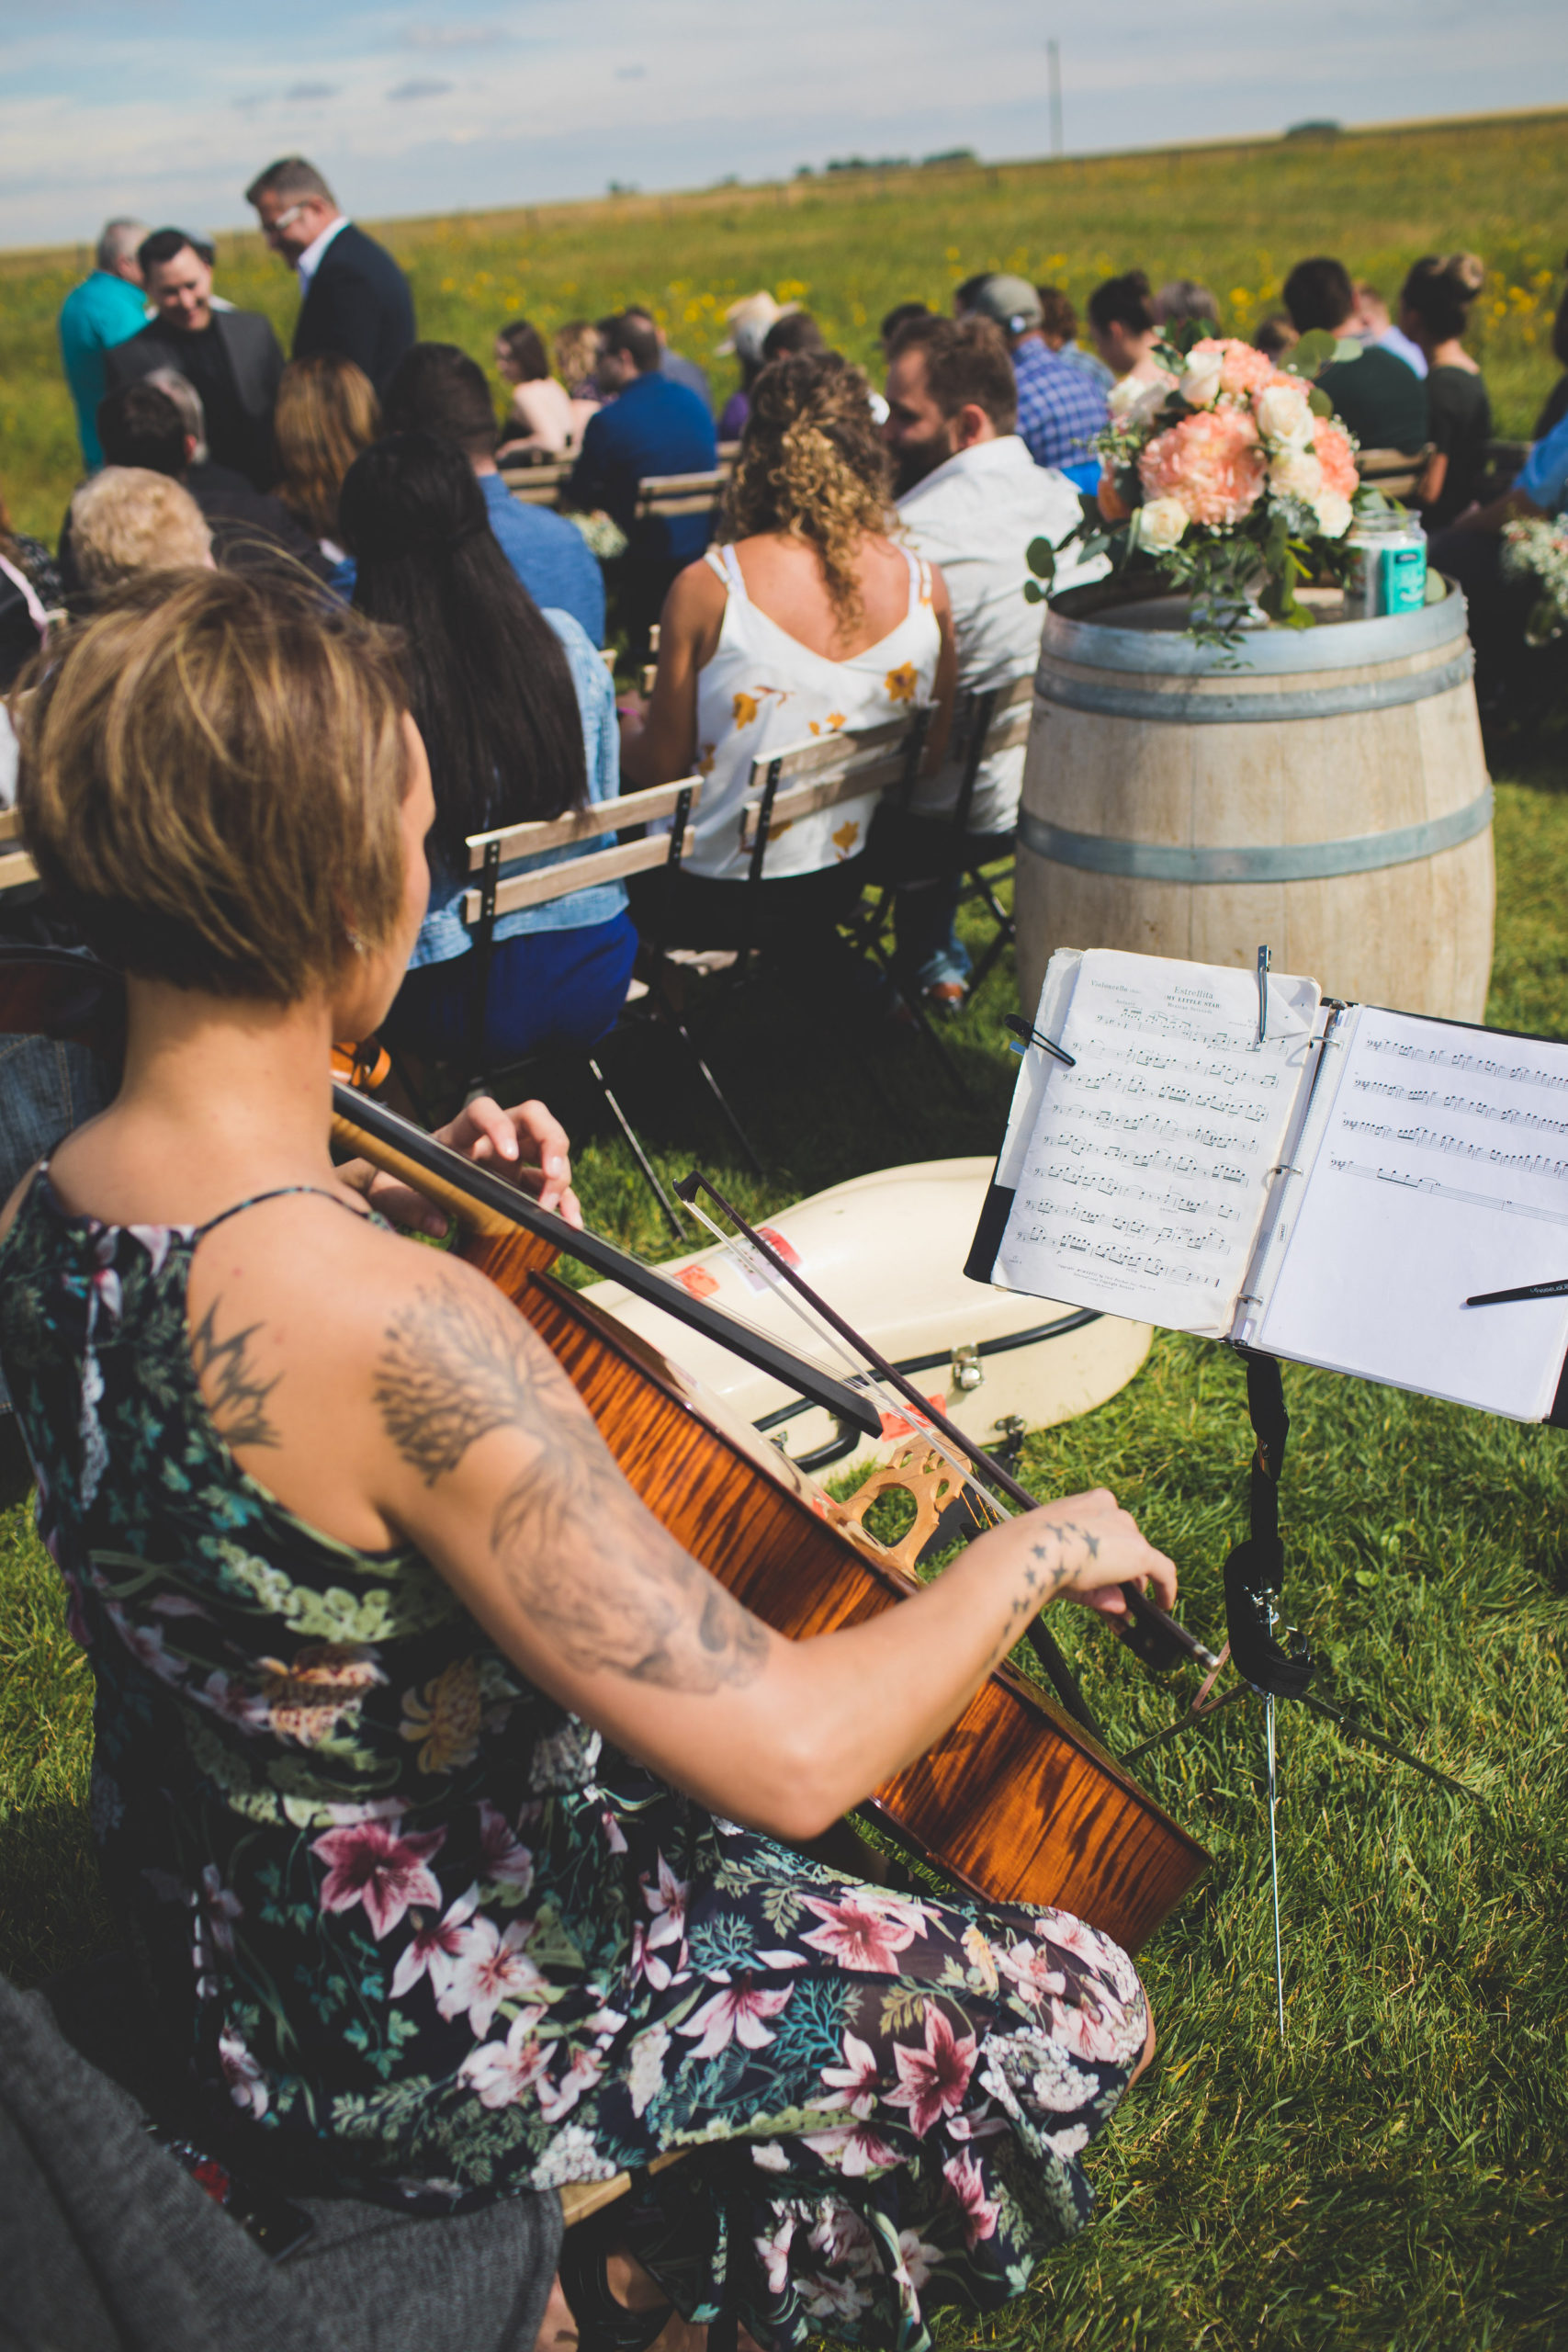 Violinist playing at an outdoor ceremony in a prairie field in Calgary, Alberta.